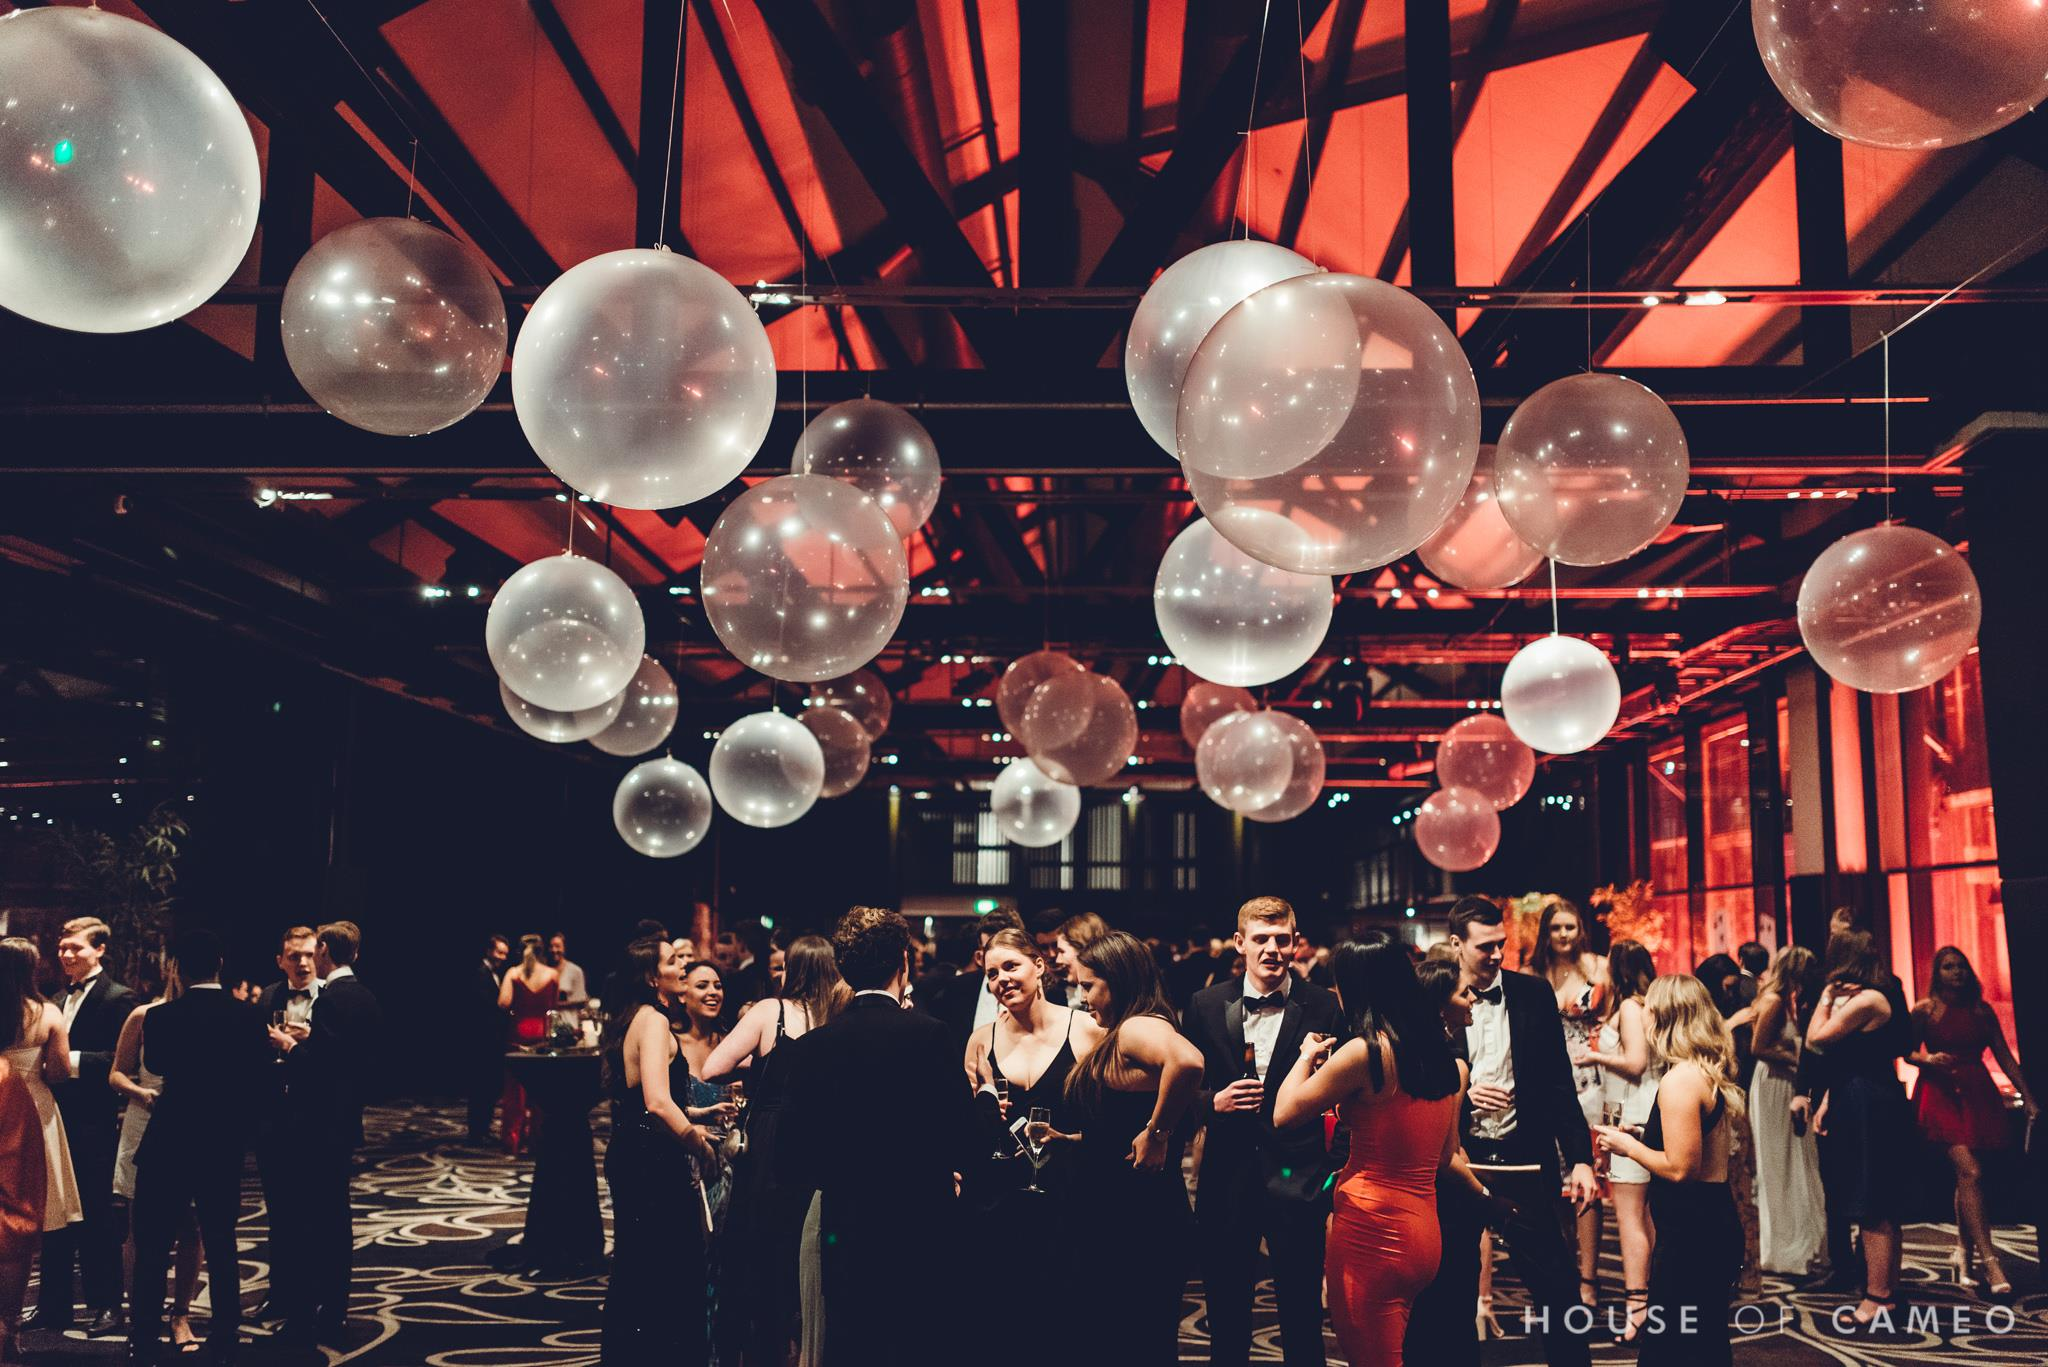 8 Spectacular School Formal & Graduation Ball Themes for 2018 - Doltone House